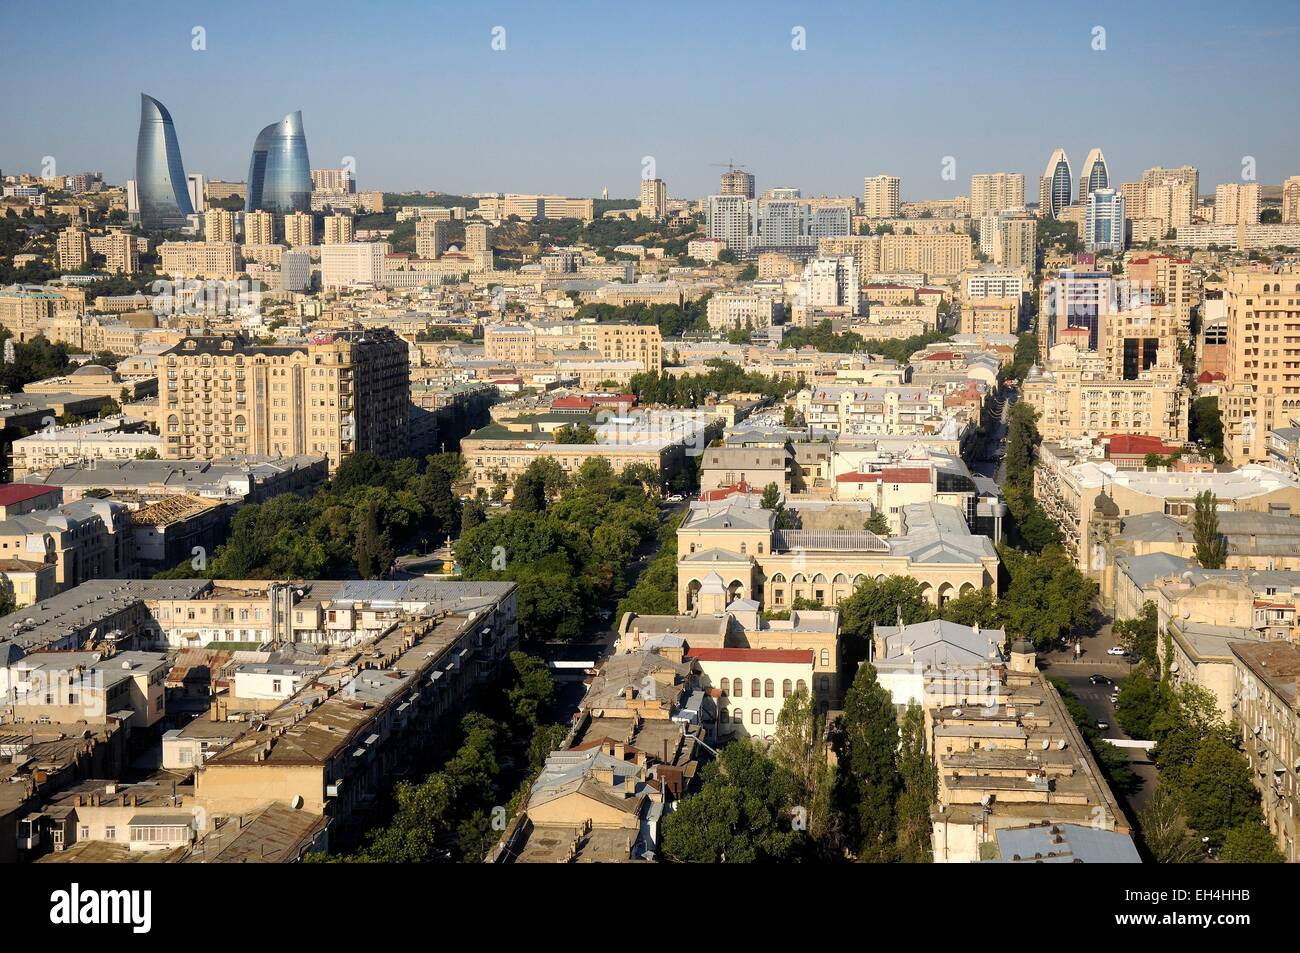 Azerbaijan, Baku, general view of the city and the Flame Towers - Stock Image